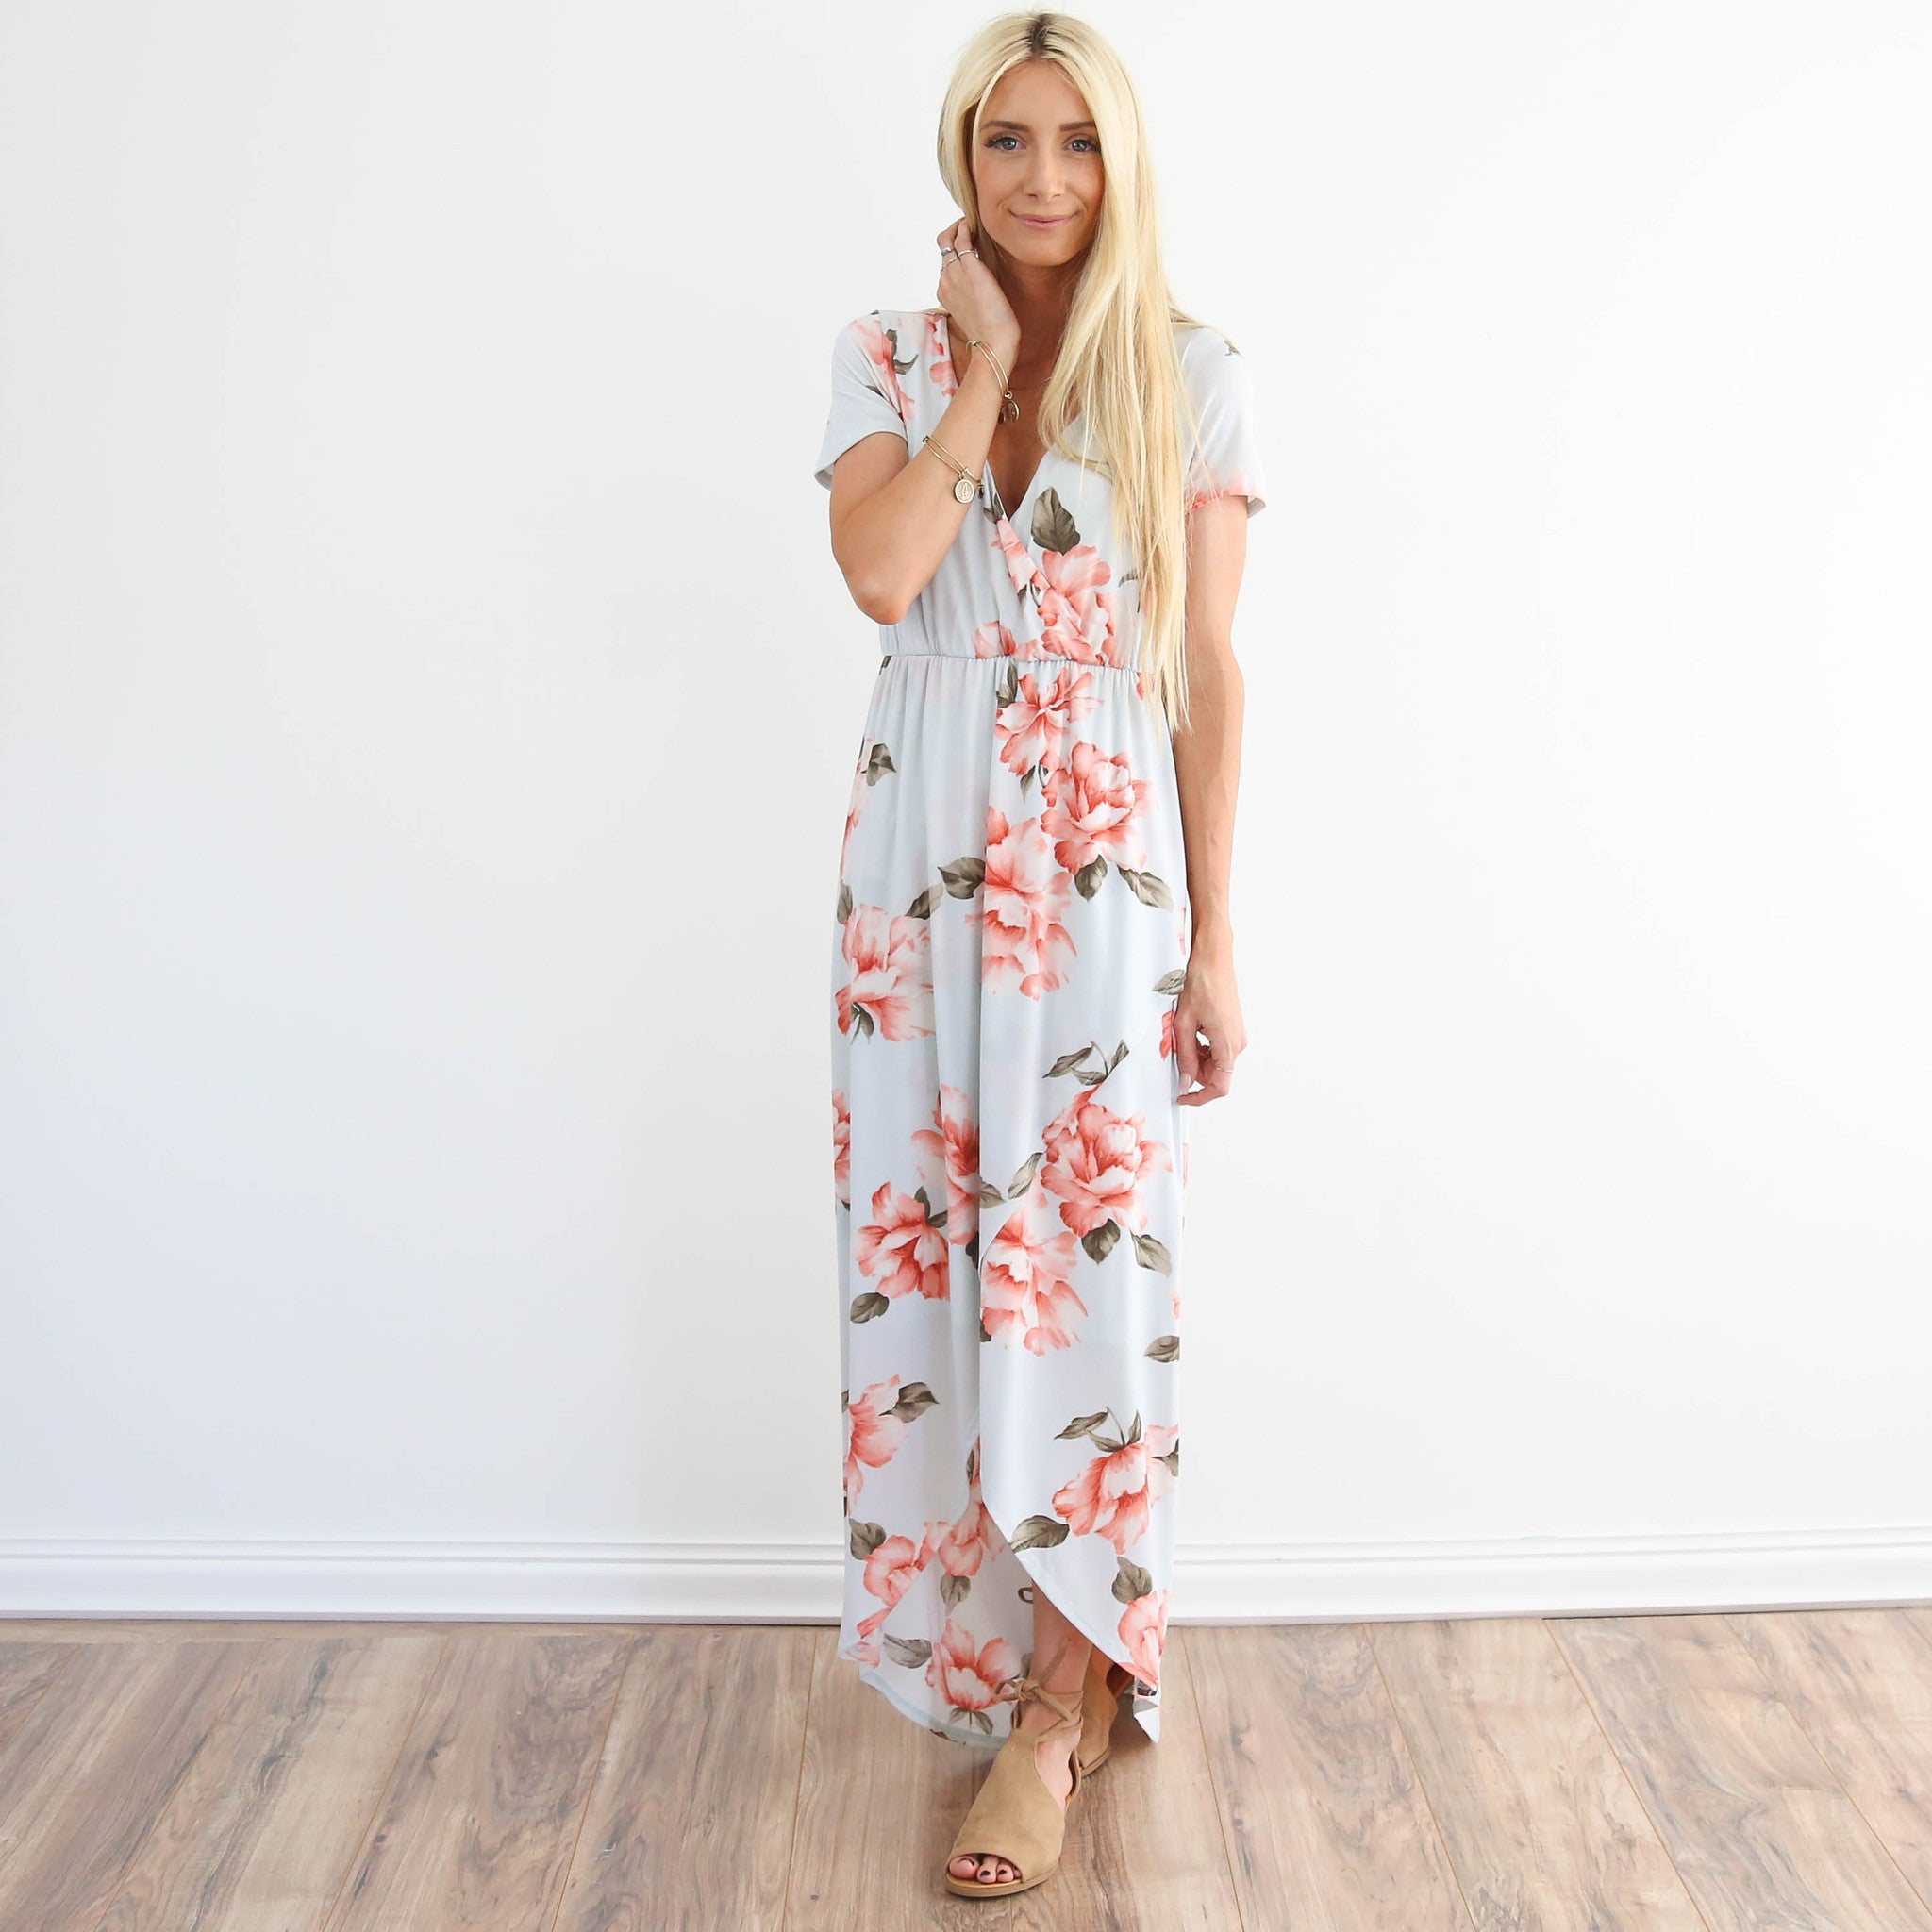 Verano Floral Dress in Light Blue